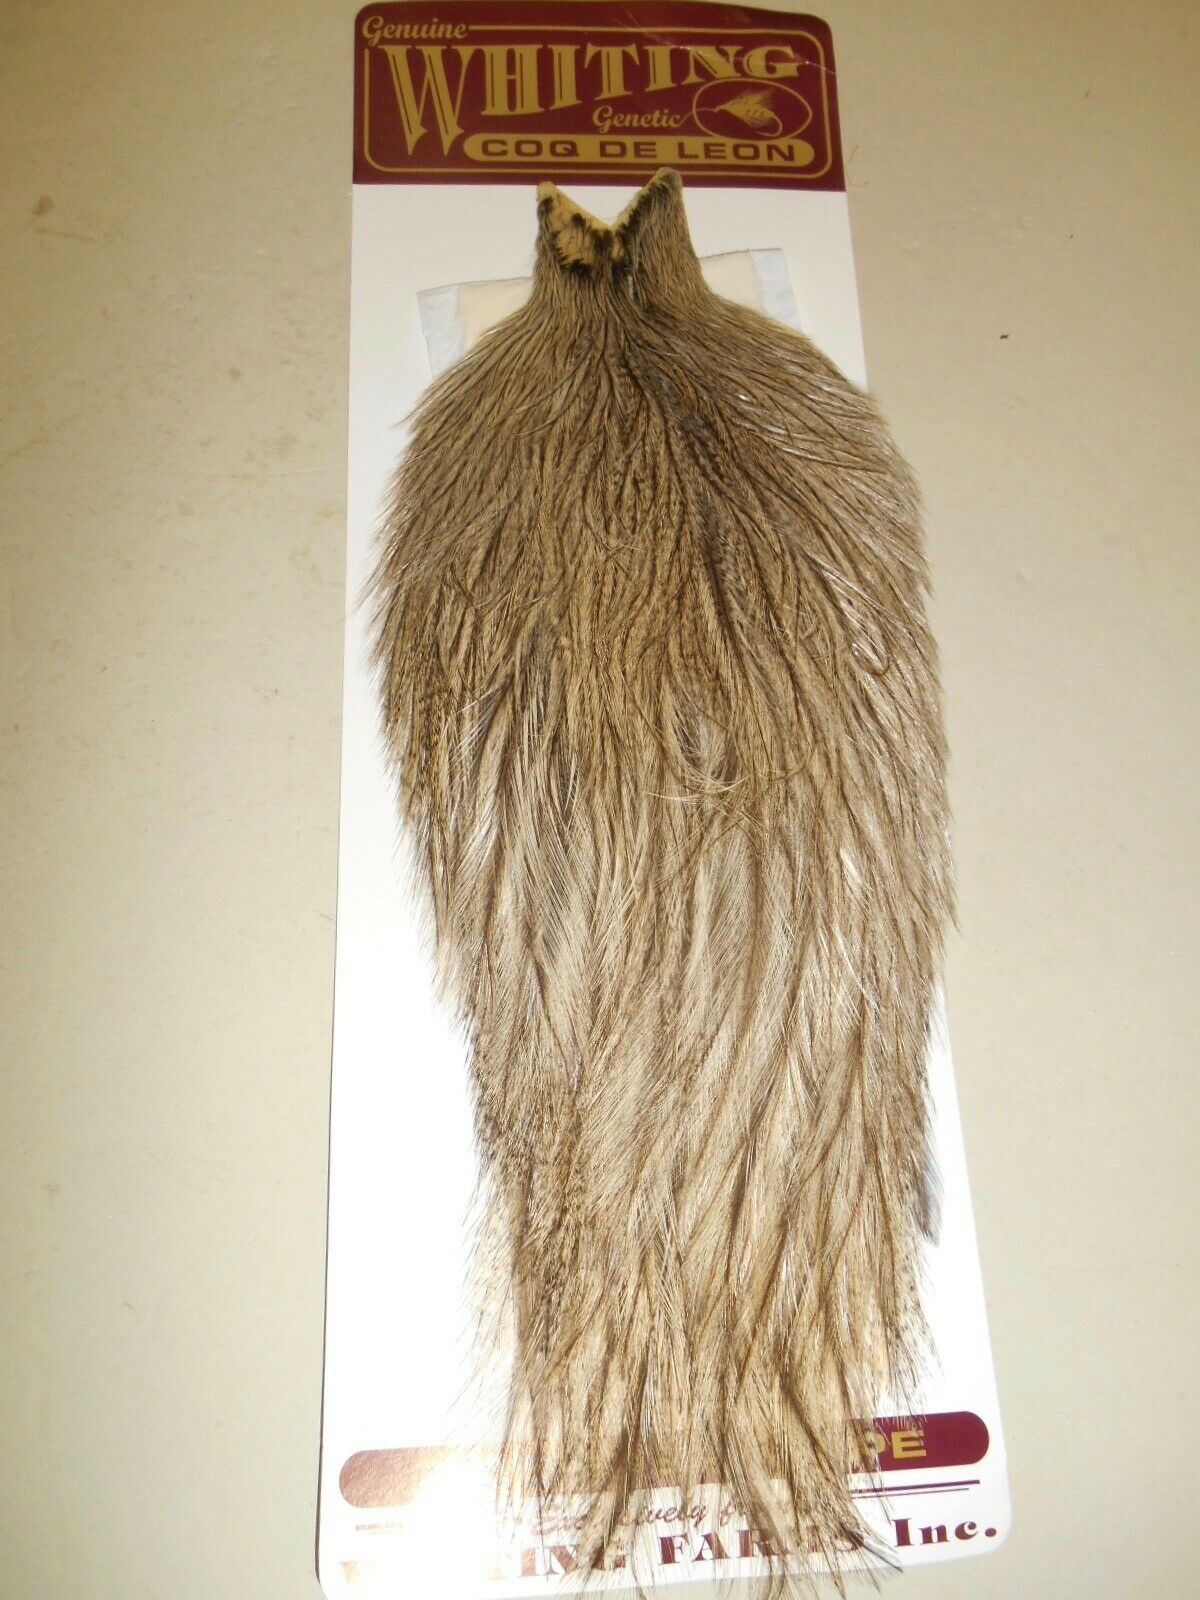 Whiting Coq de Leon Cape BADGER DYED NATURAL BROWN